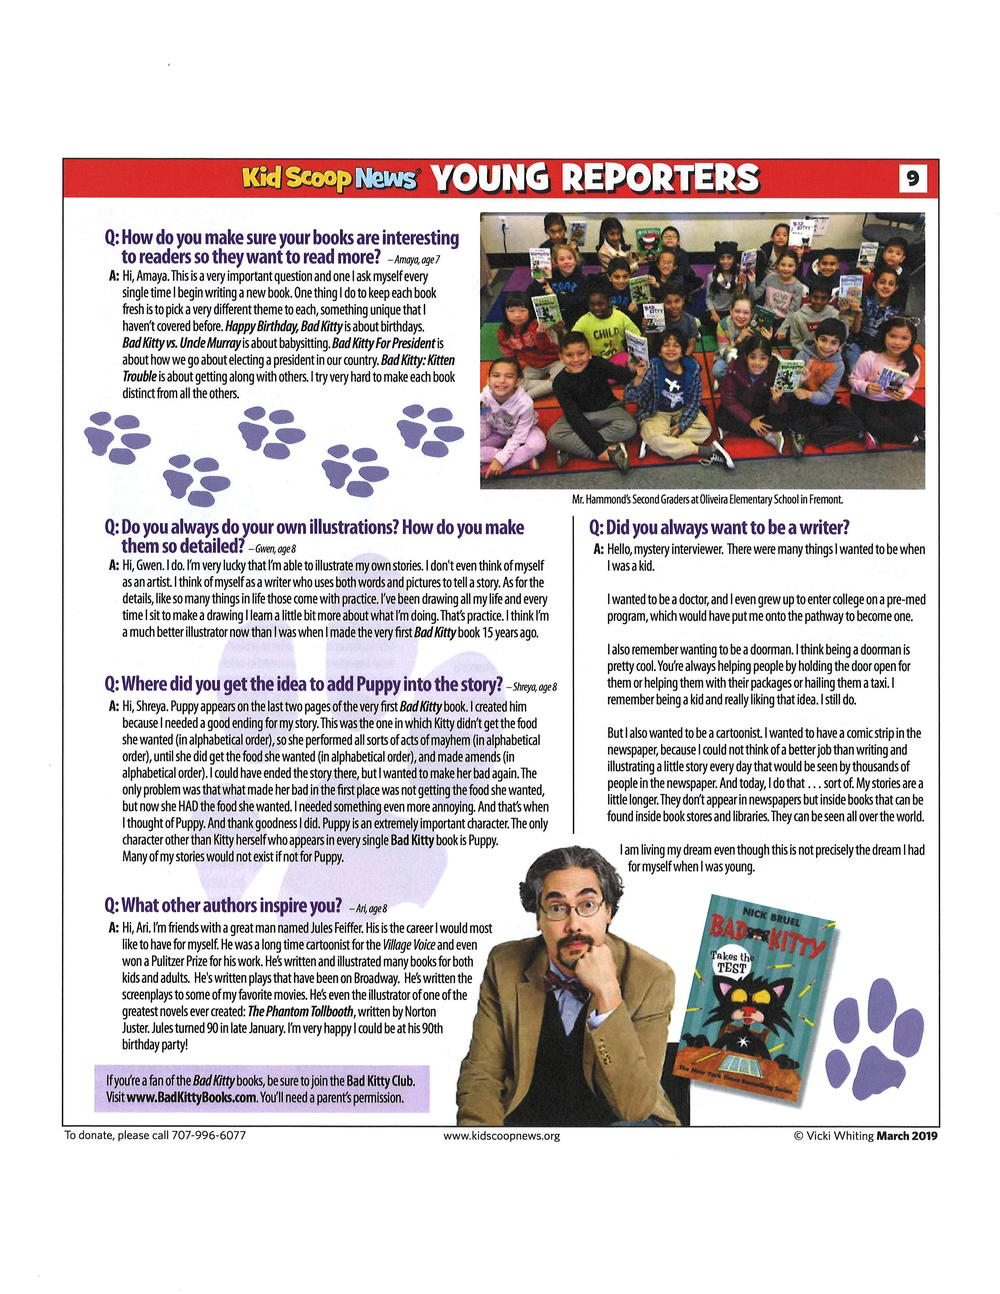 Page 2 of Young Reporters article.